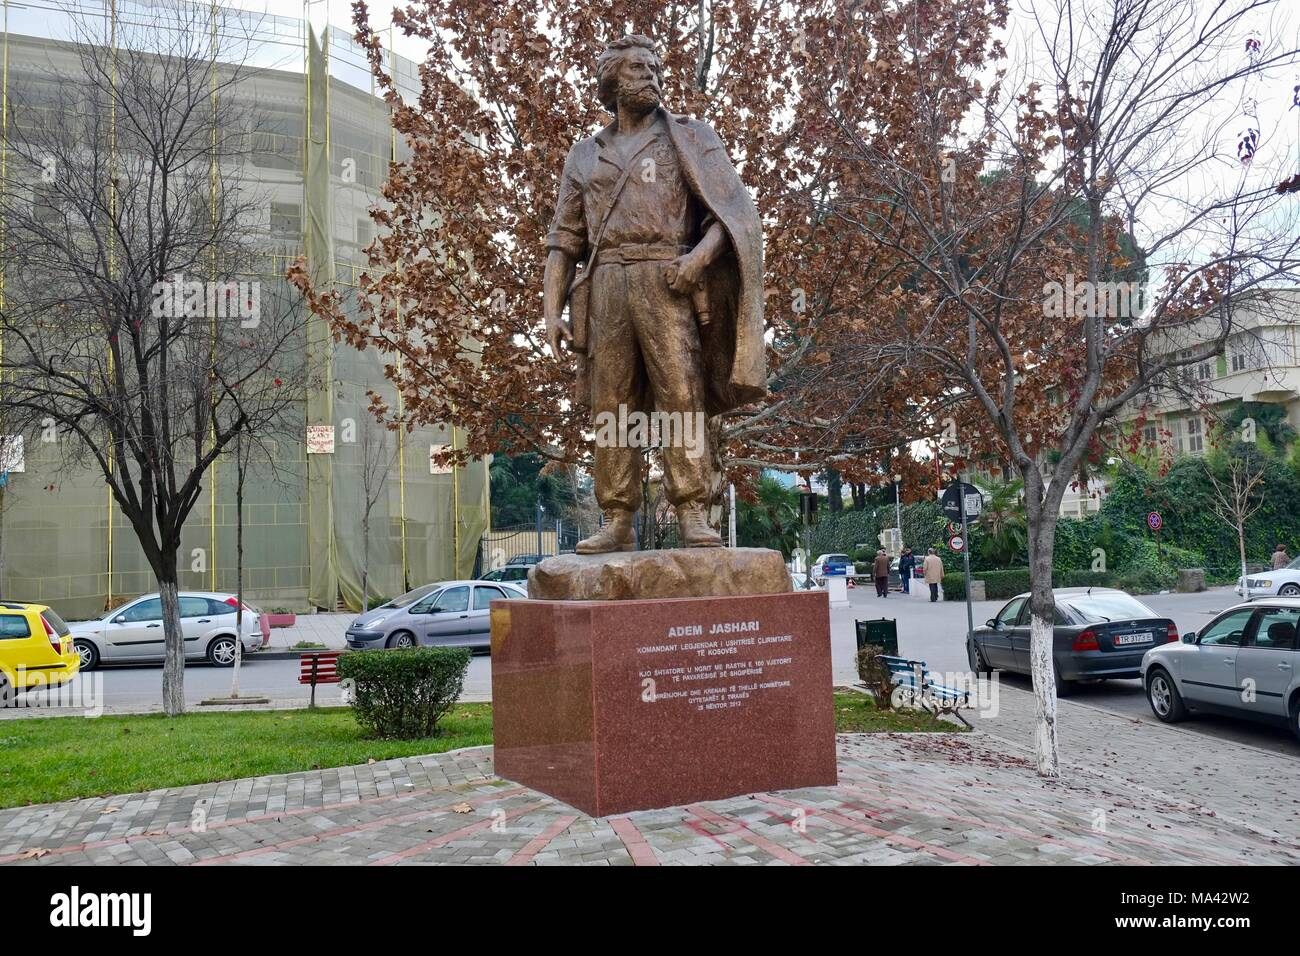 Monument of Adem Jashari, one of the founder of Kosovo Liberation Army in Tirana, Albania Stock Photo